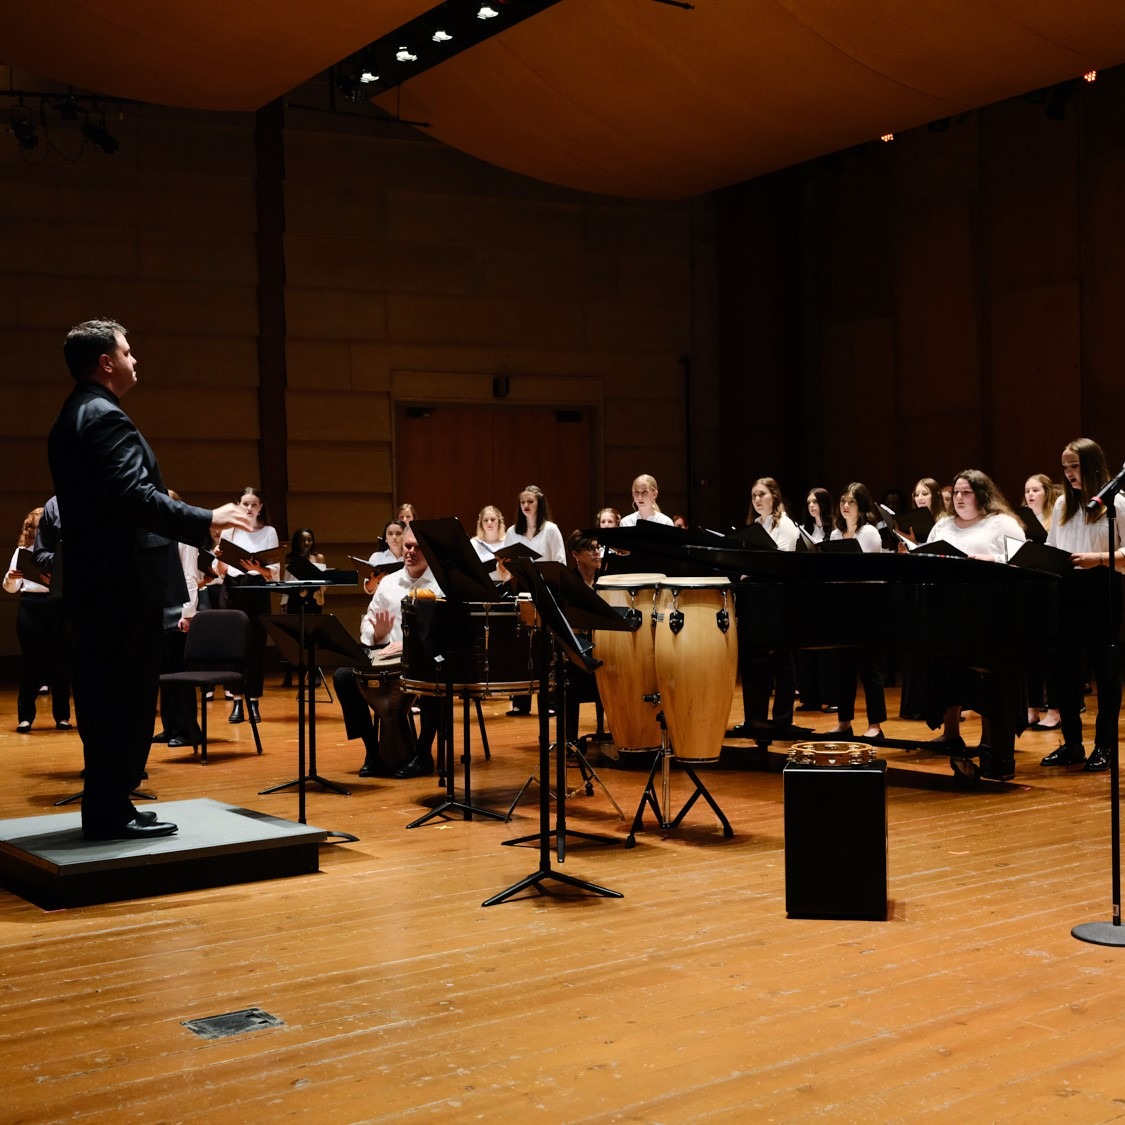 OSAI 2019 Institute Chorus Performances – Audio